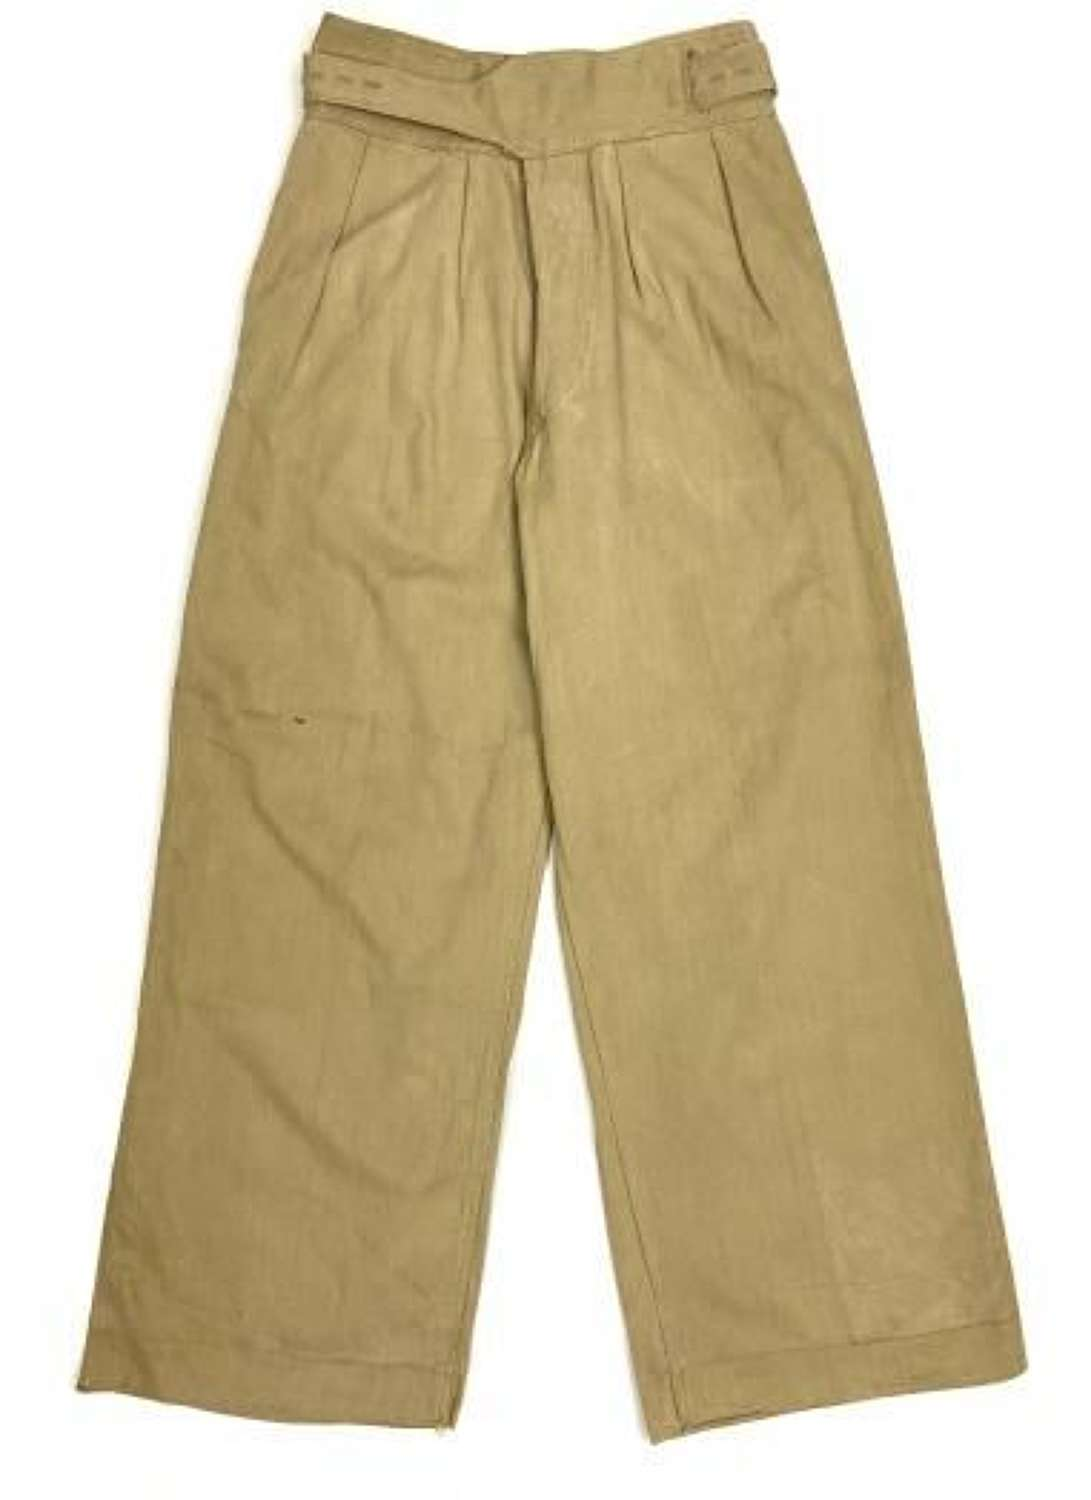 Original 1944 Dated Indian Made Khaki Drill Trousers